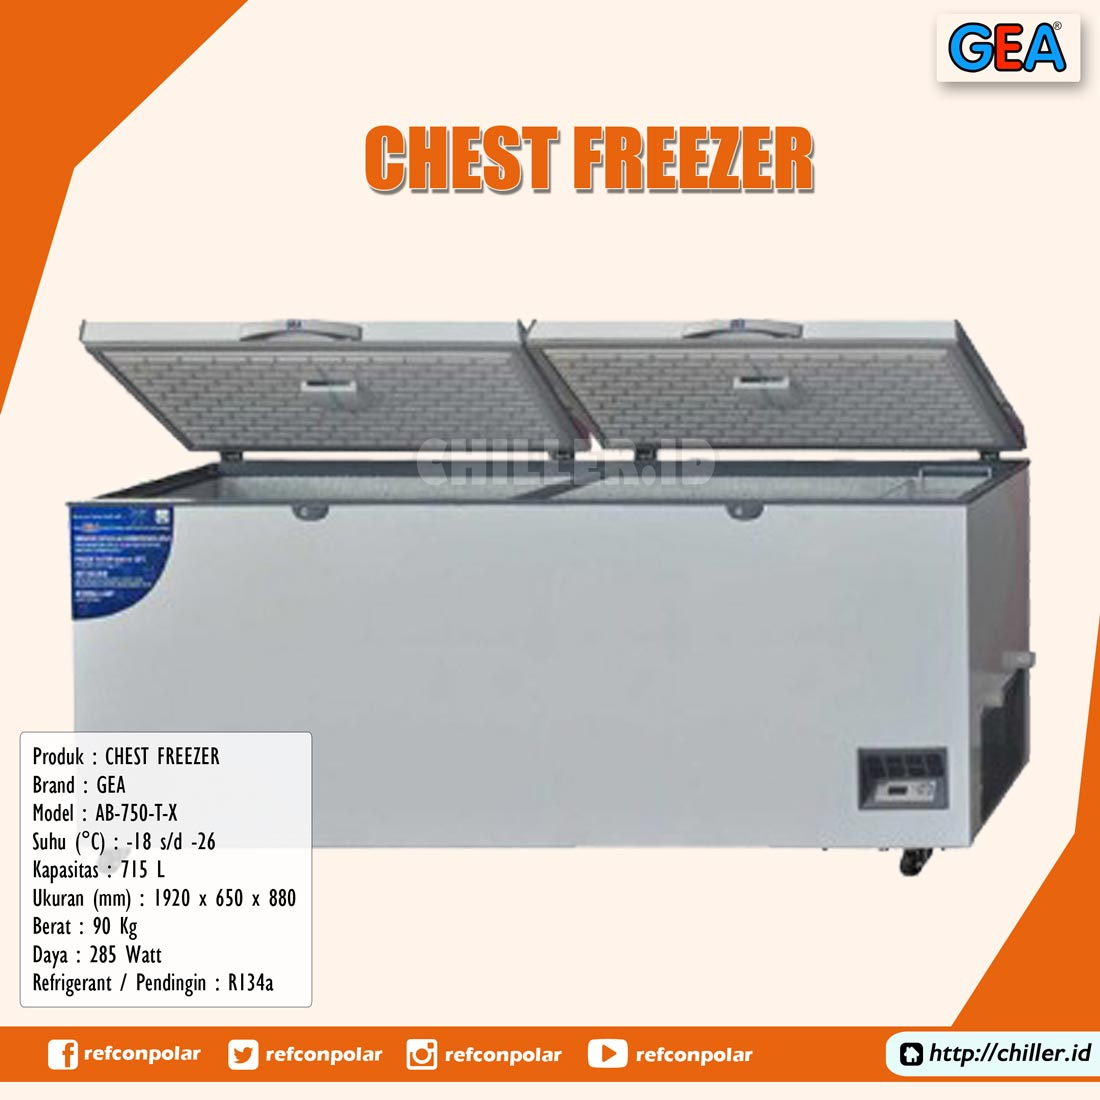 AB-750-T-X GEA Chest Freezer